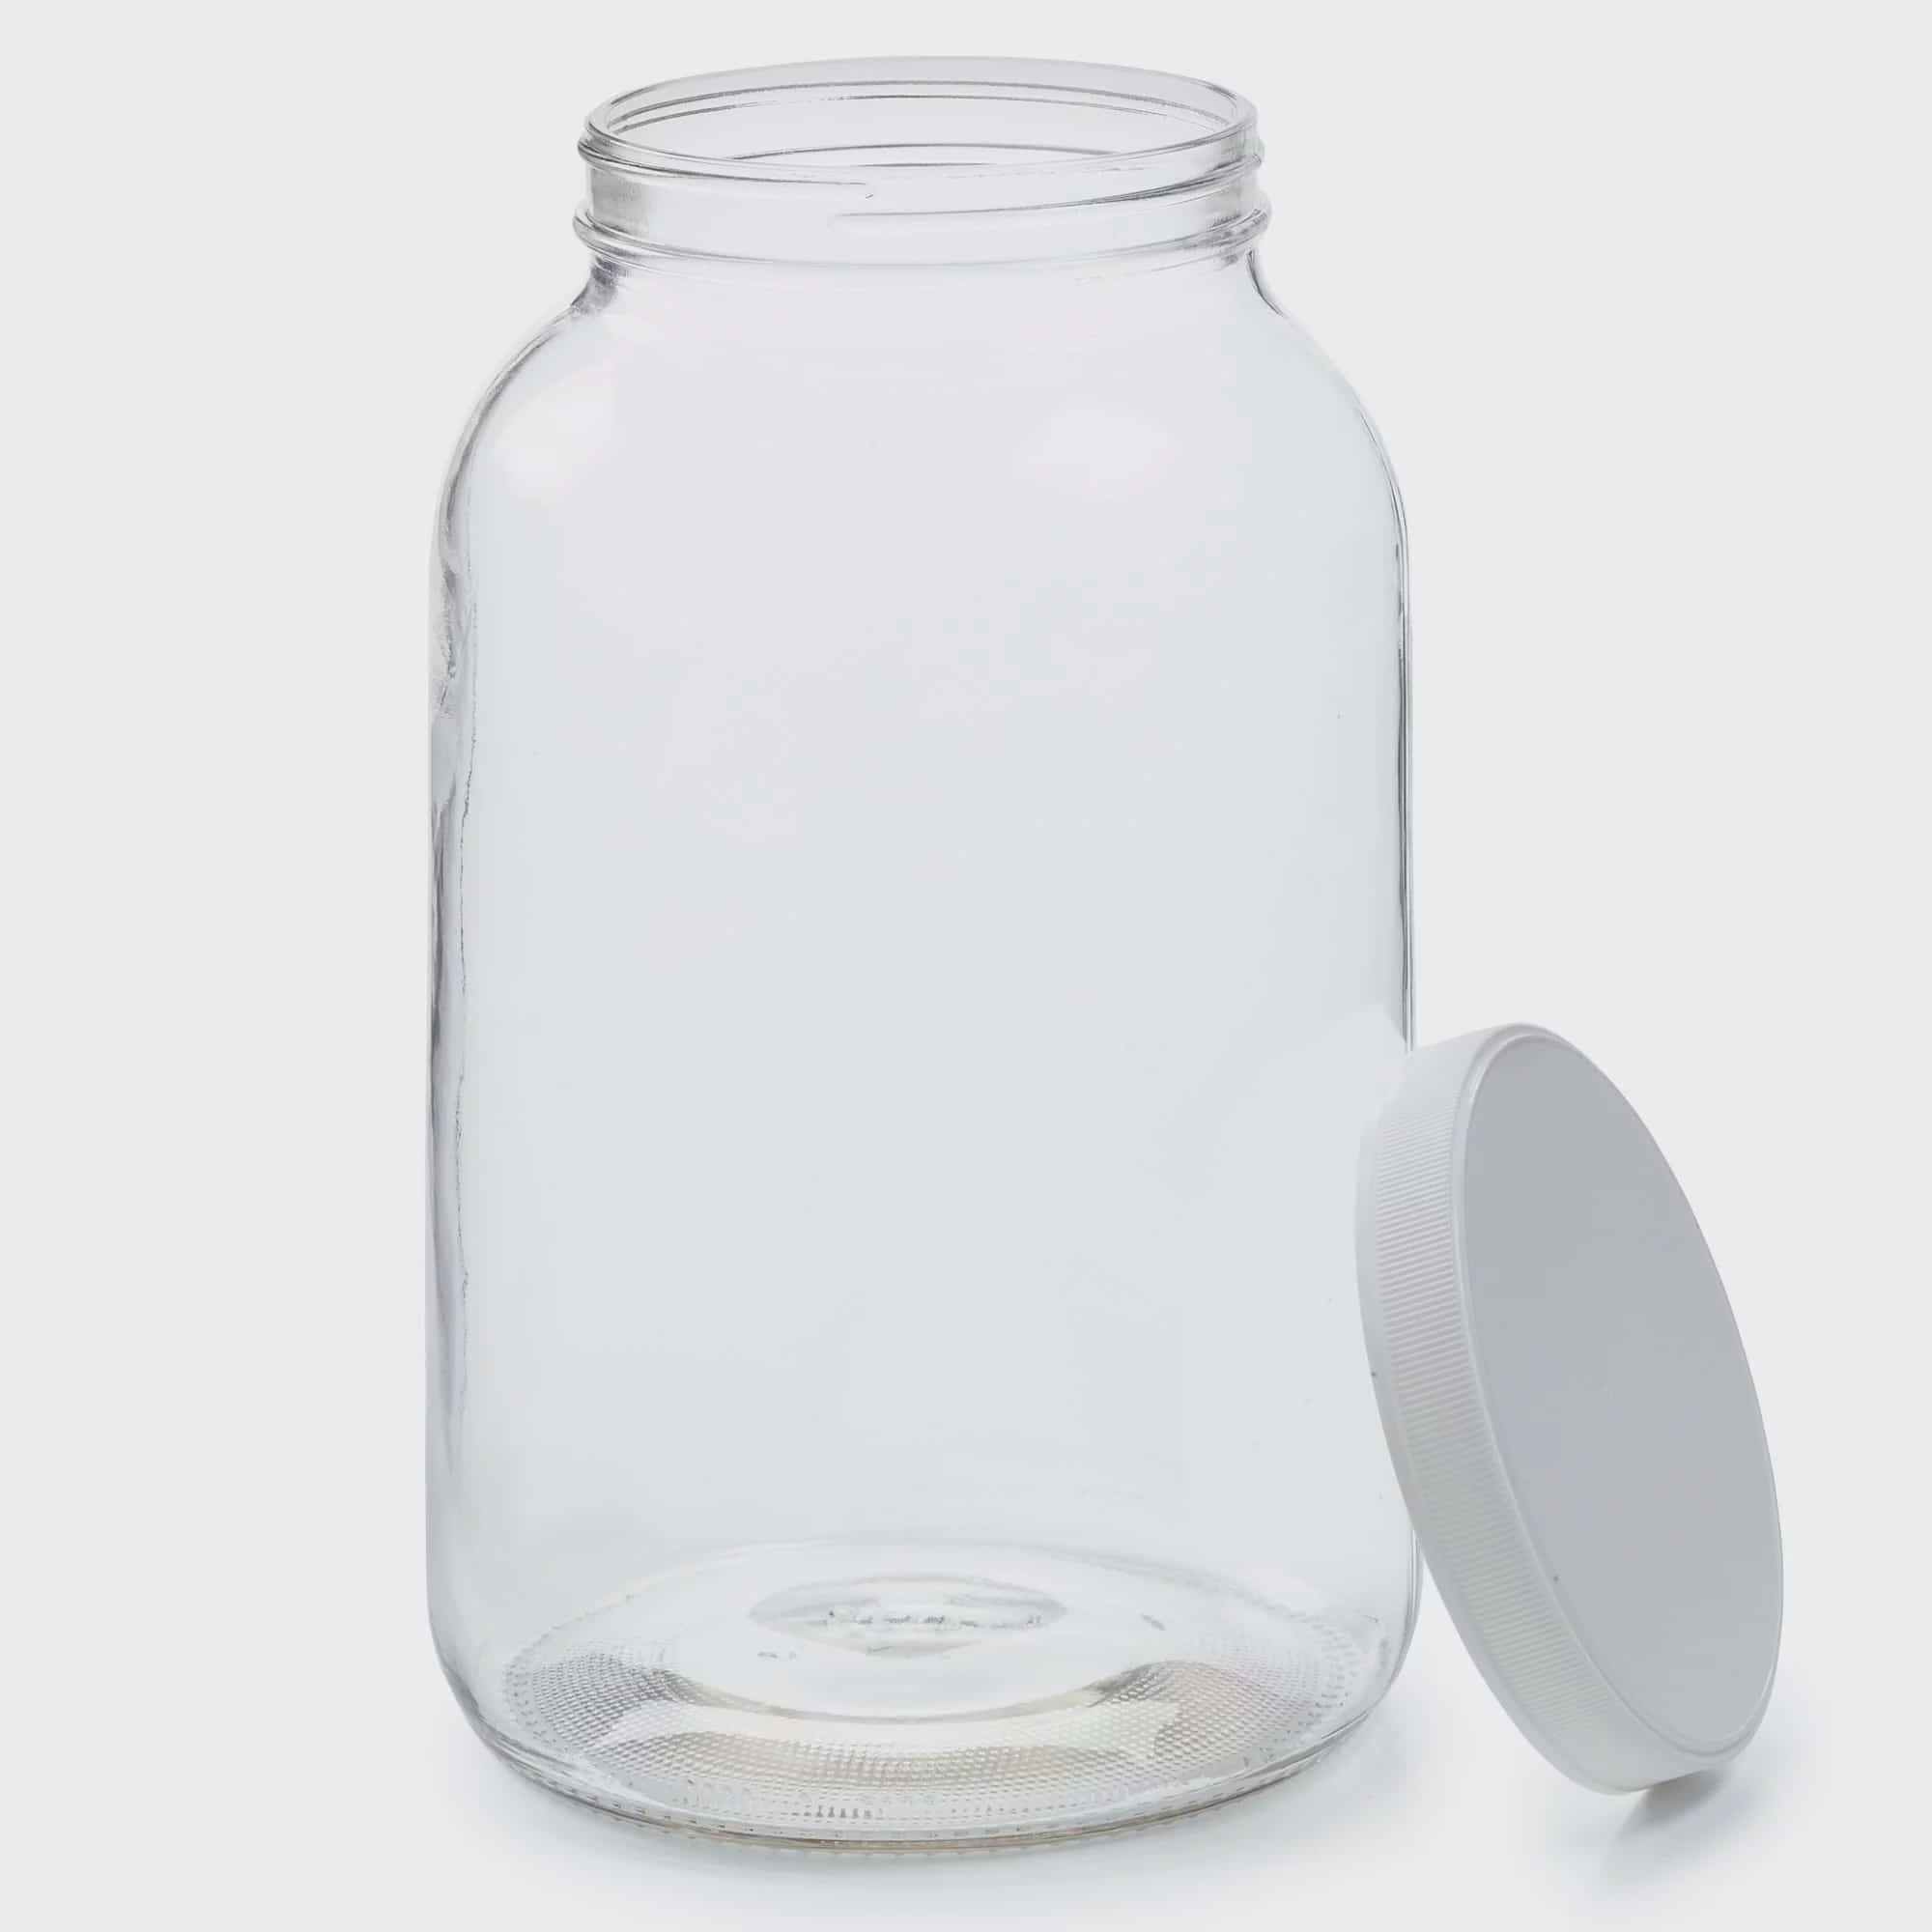 Empty 1 Gallon Glass Jar W Airtight Leakproof Plastic Lid Wide Mouth Easy To Clean Bpa Free Dishwasher Safe Usda Certified Kombucha Tea Kefir Canning Sun Tea Fermentation